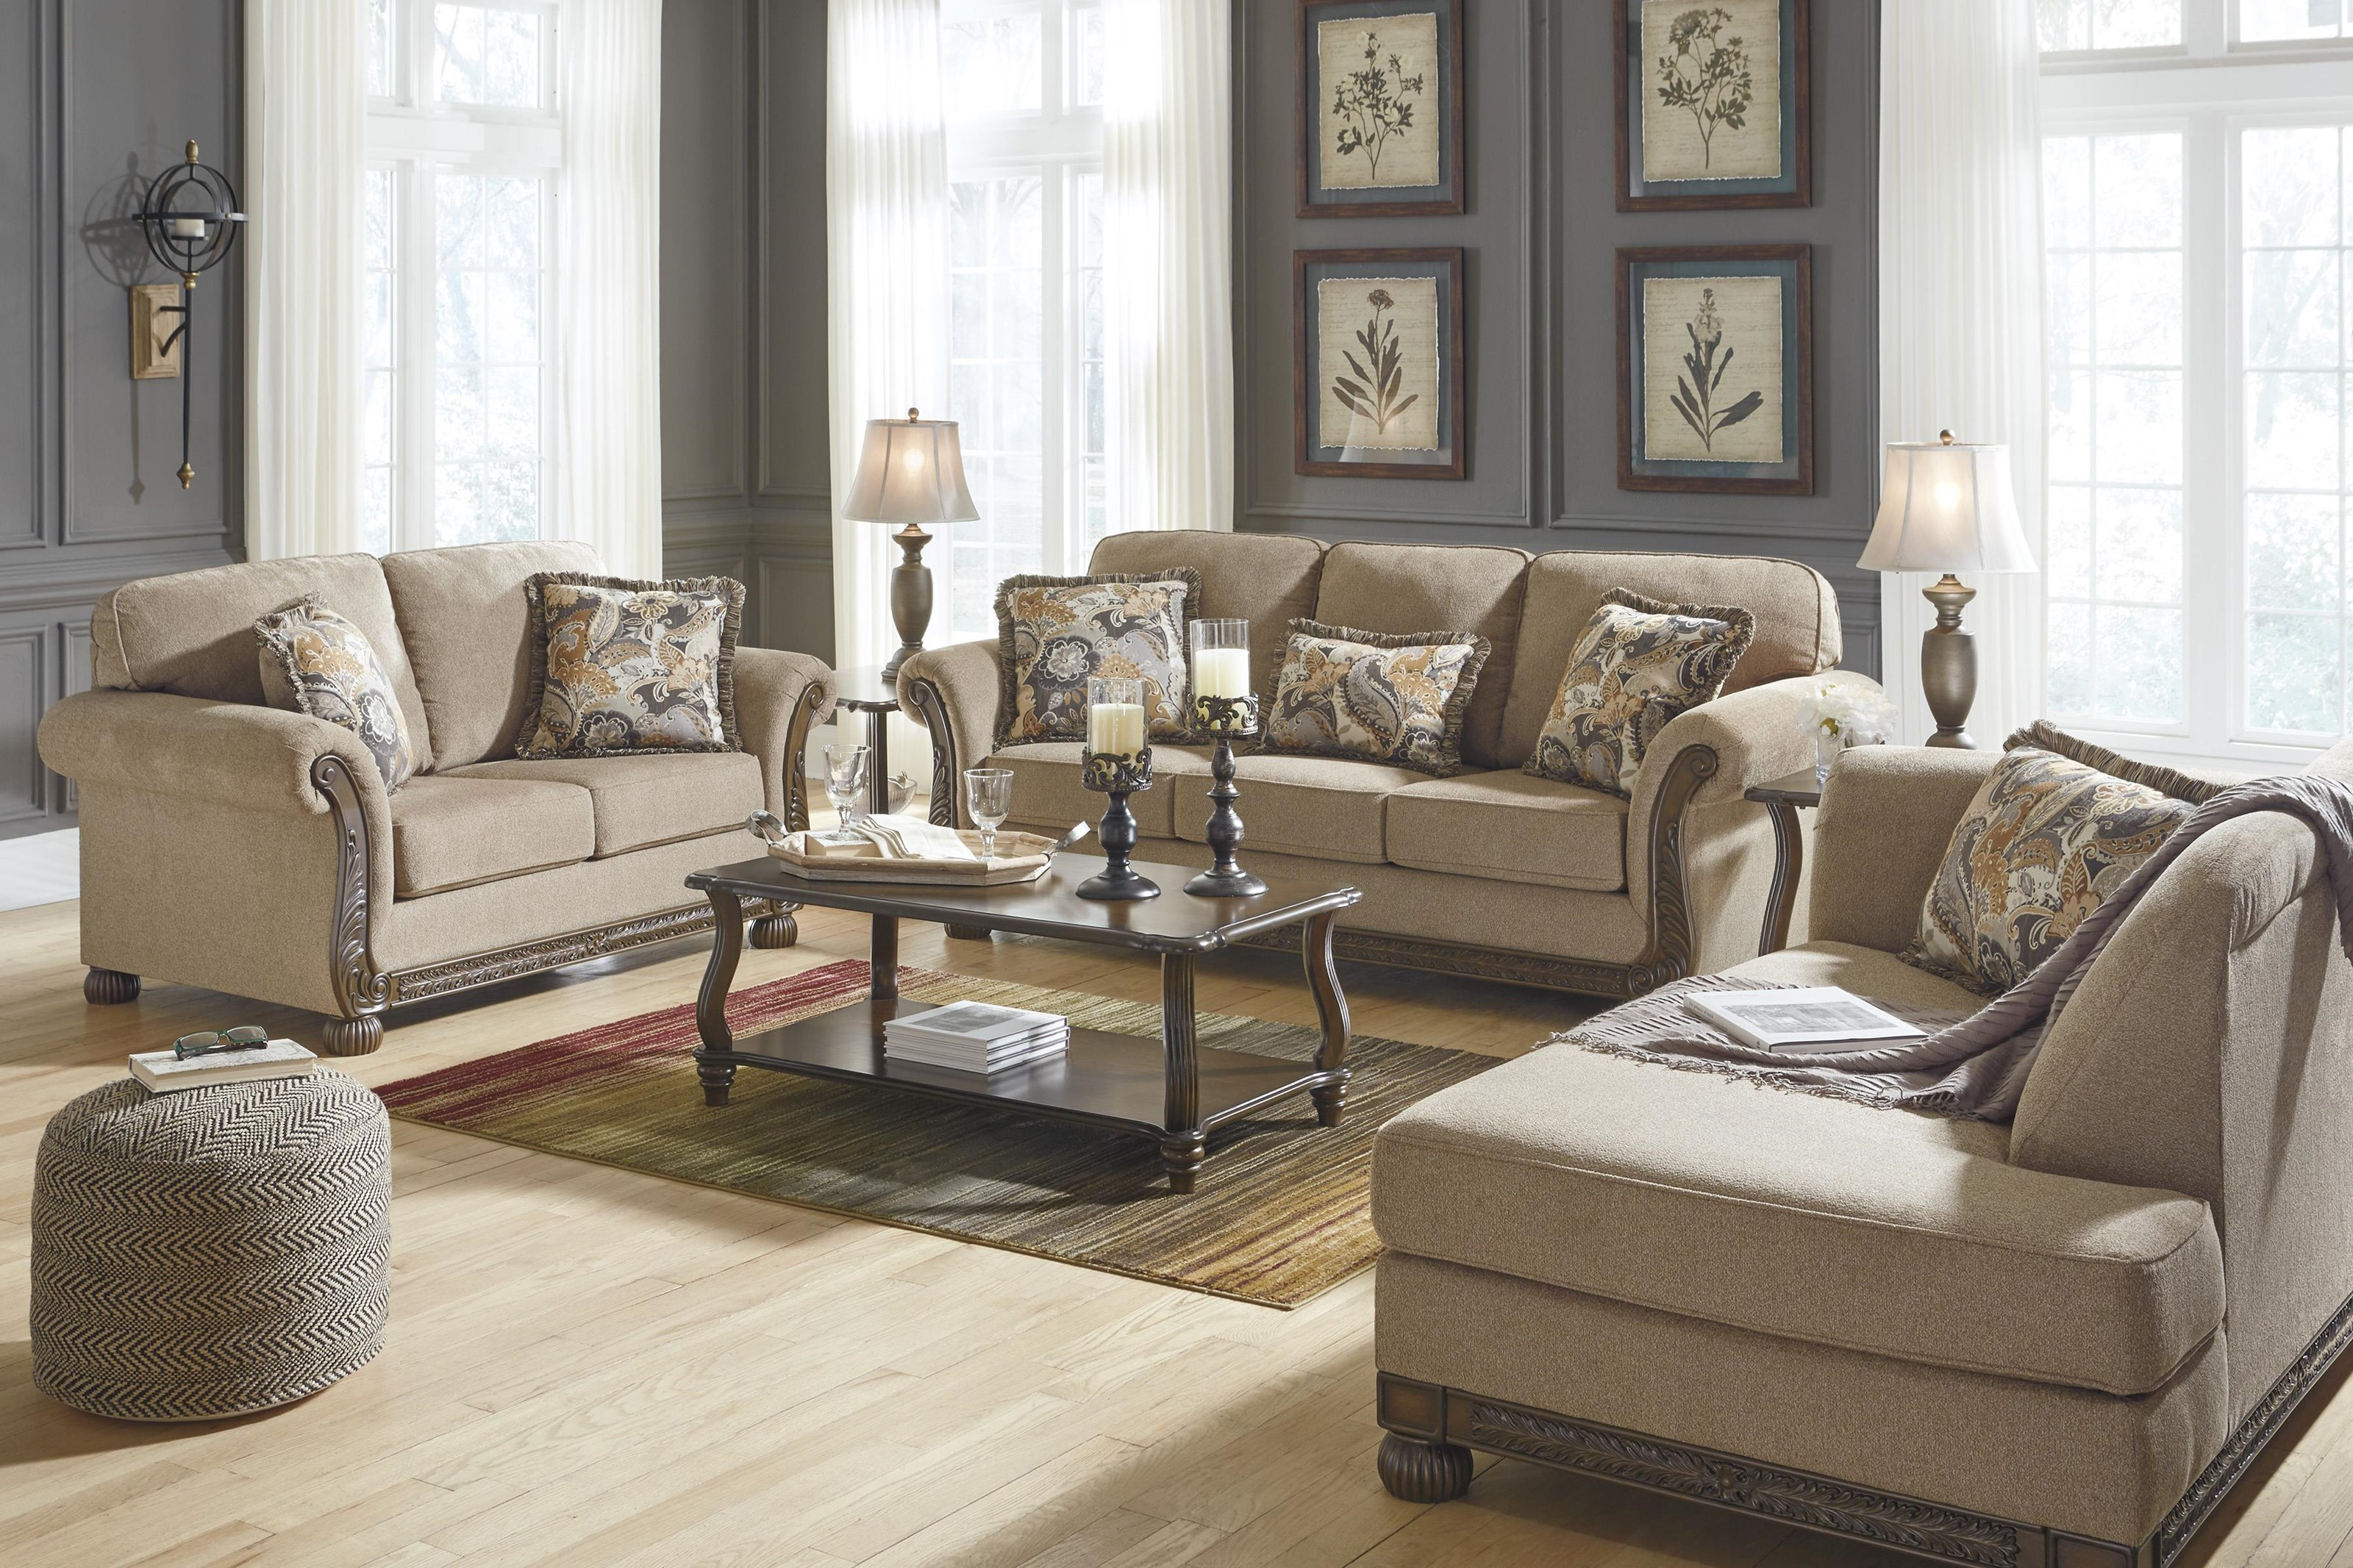 Picture of: Signature Design By Ashley Westerwood 4960138 35 16 Patina Sofa Loveseat And Laf Corner Chaise Set Sam Levitz Furniture Stationary Living Room Groups